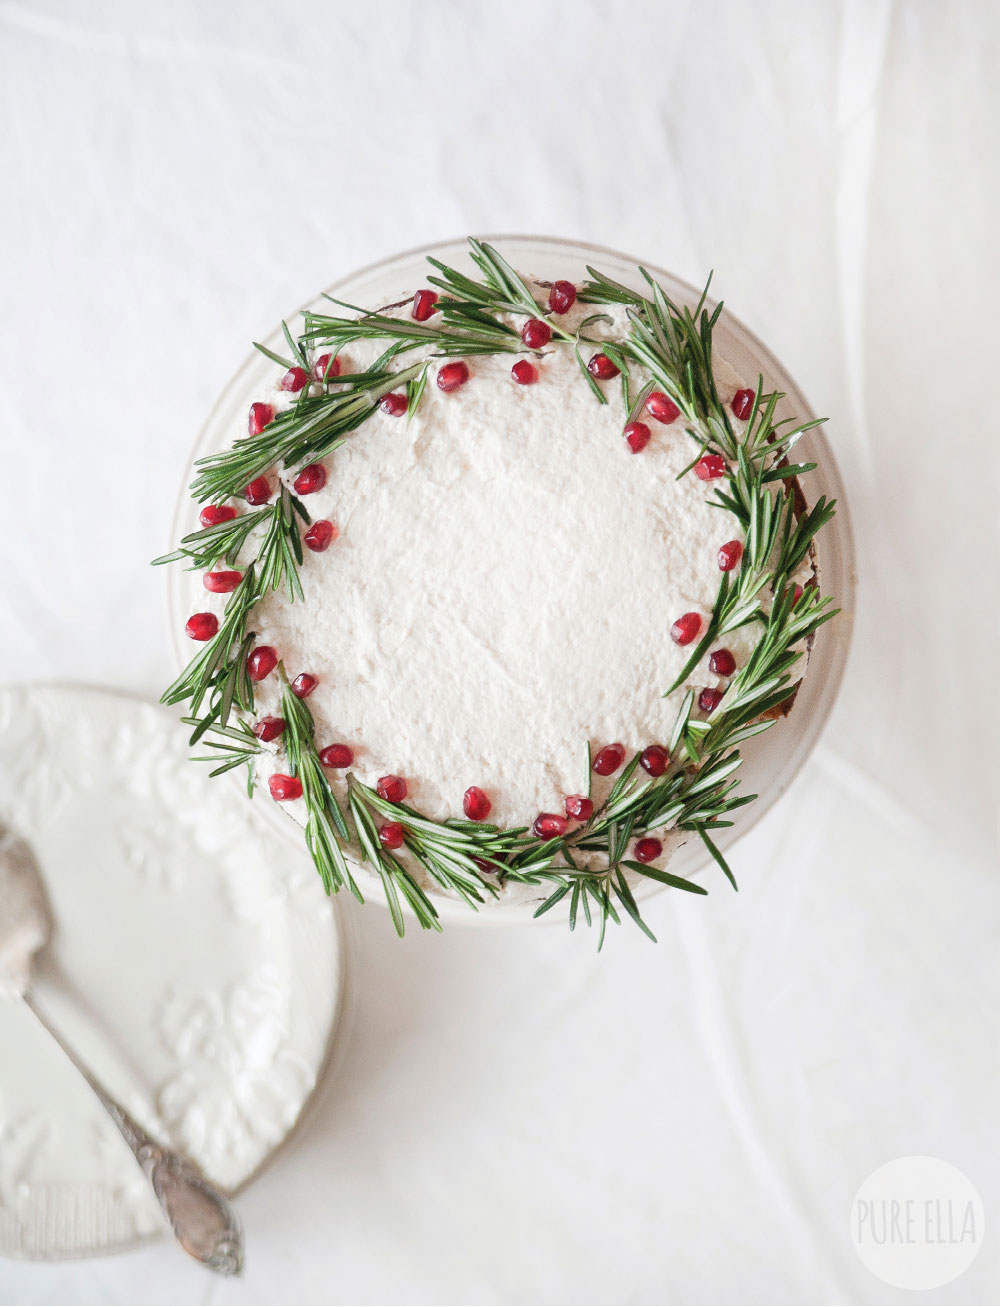 Gluten-free-Vegan-Gingerbread-Christmas-Wreath-Cake-Recipe6